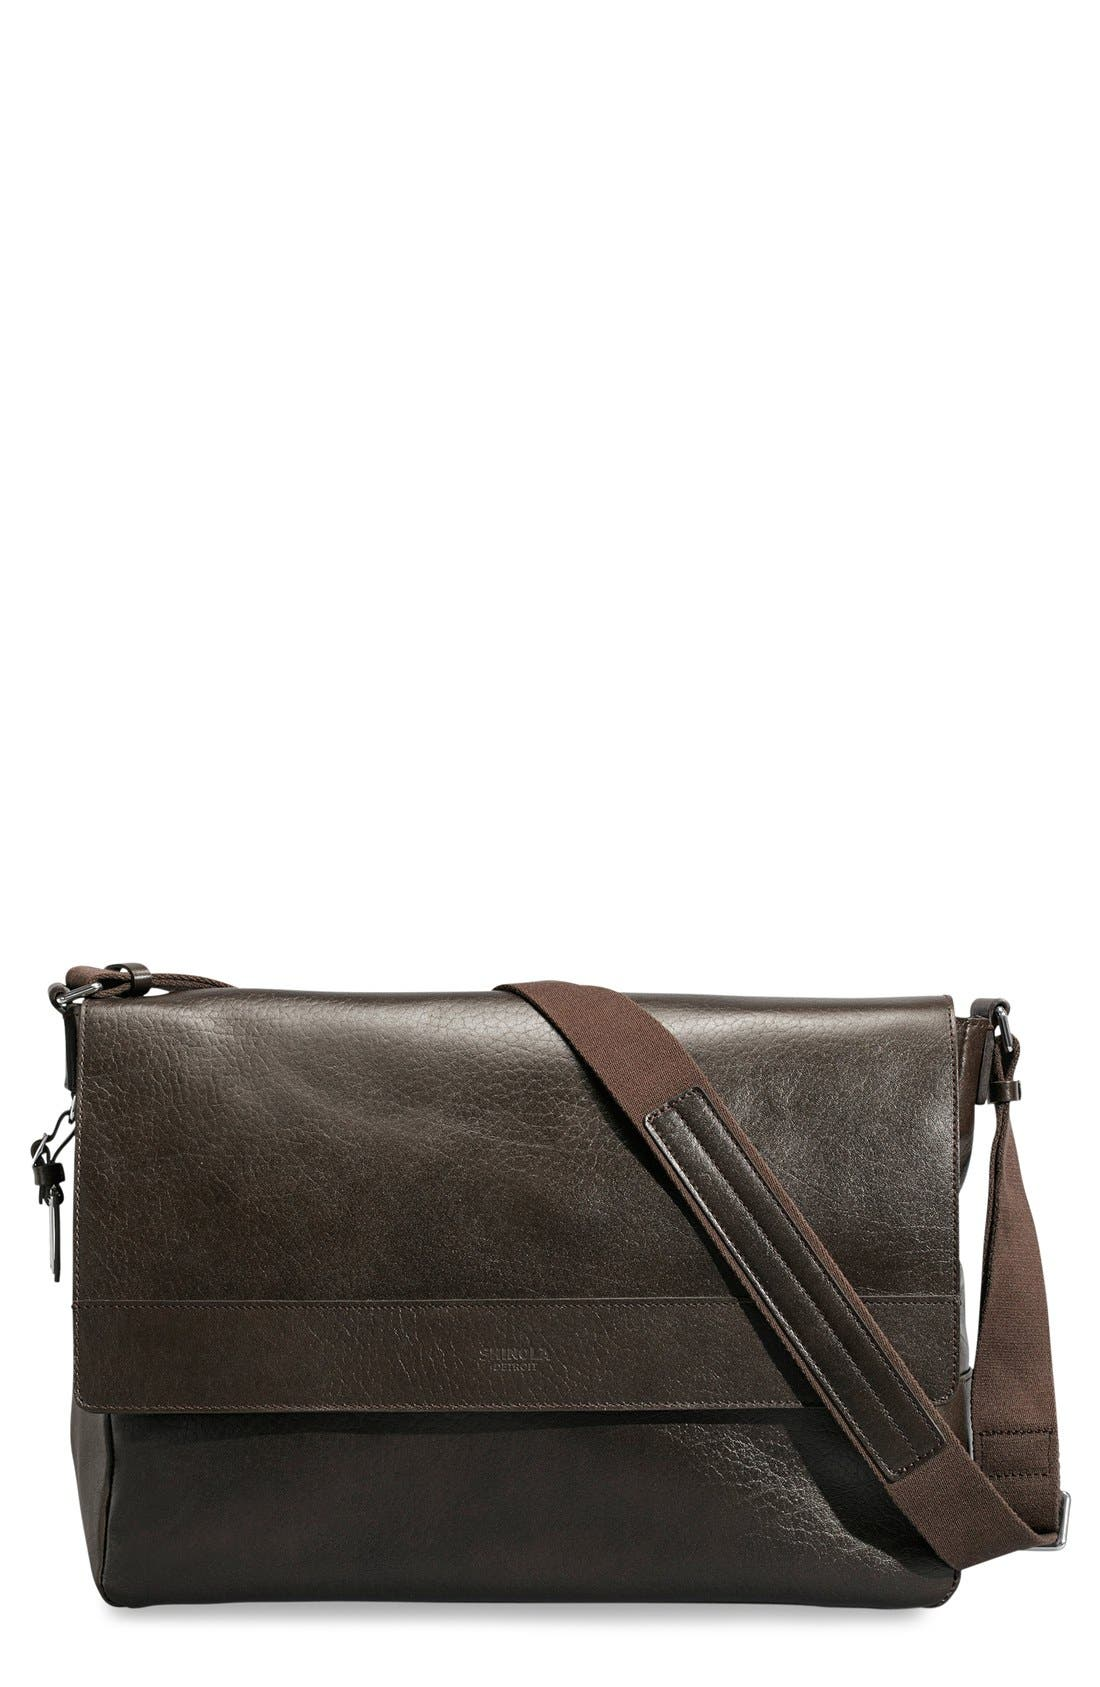 Alternate Image 1 Selected - Shinola East/West Messenger Bag